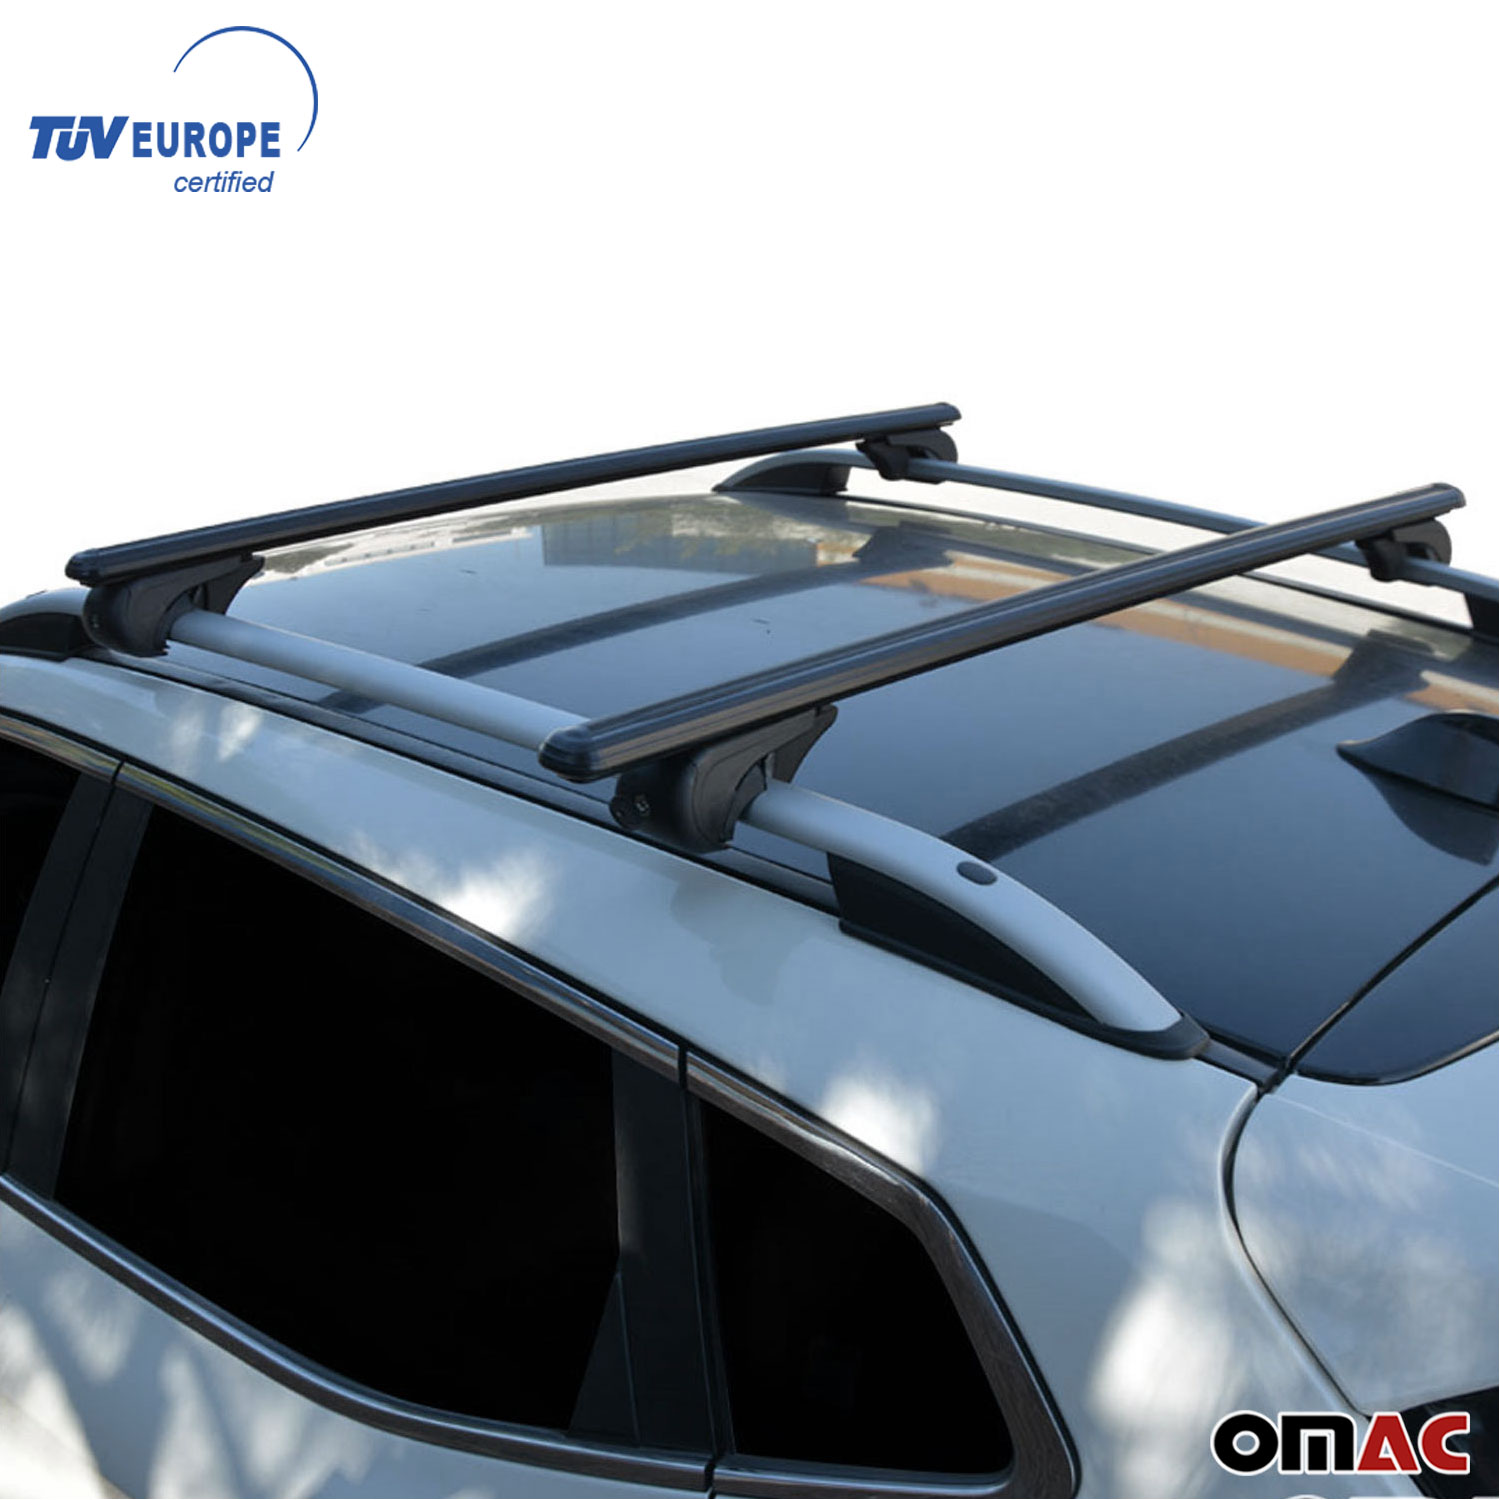 Roof Rack Cross Bars Luggage Carrier Black For Acura TSX